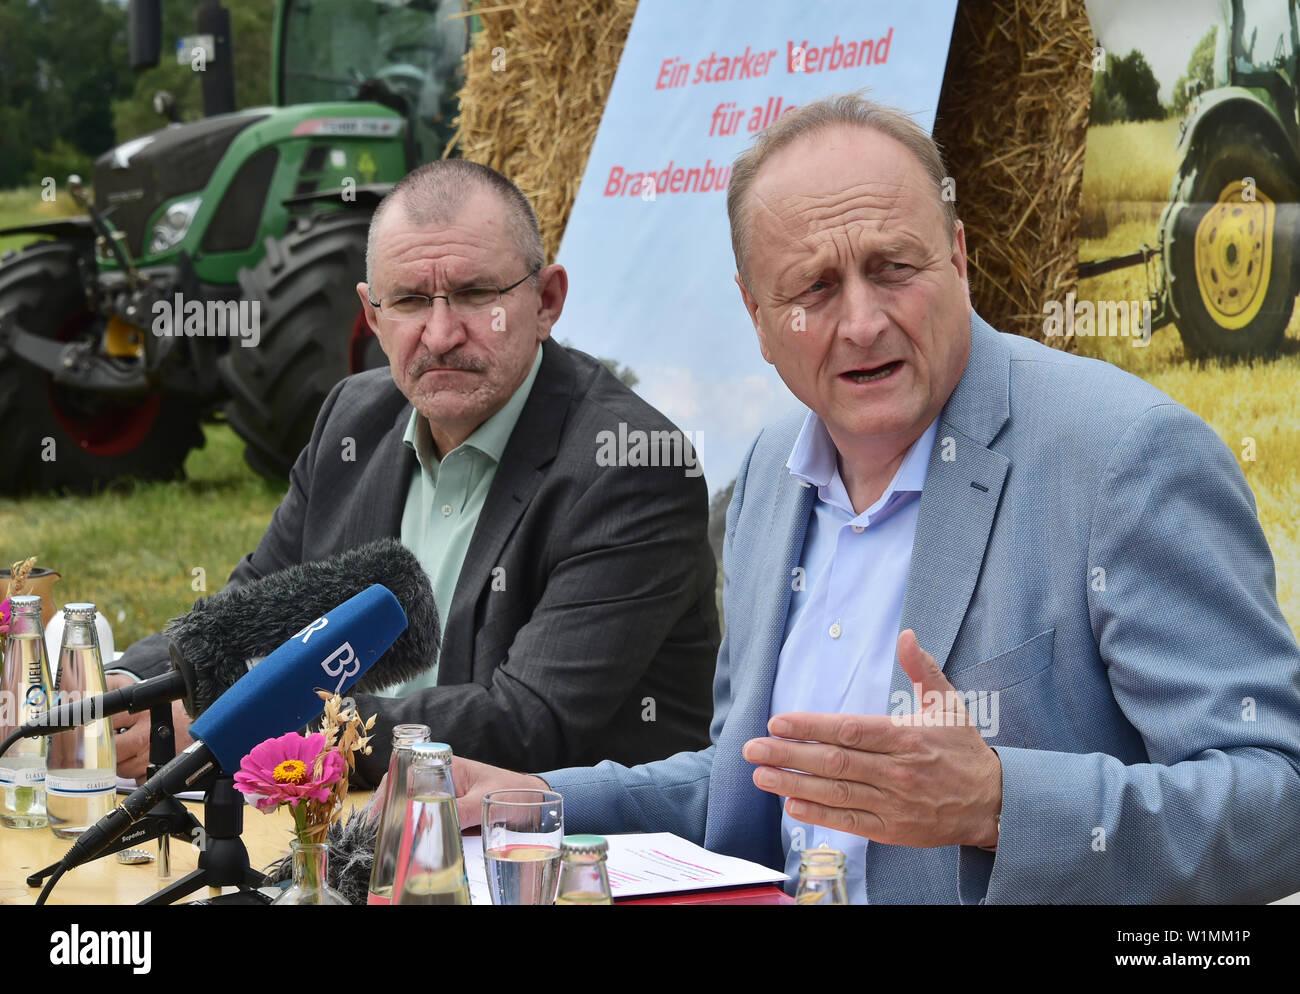 03 July 2019, Brandenburg, Dallgow-Döberitz: Joachim Rukwied (r), President of the German Farmers' Association, and Henrik Wendorff, President of the Brandenburg State Farmers' Association, speak at the press conference on the start of the harvest. Late frosts and drought are expected to cause large crop losses. Photo: Bernd Settnik/dpa-Zentralbild/dpa - Stock Image